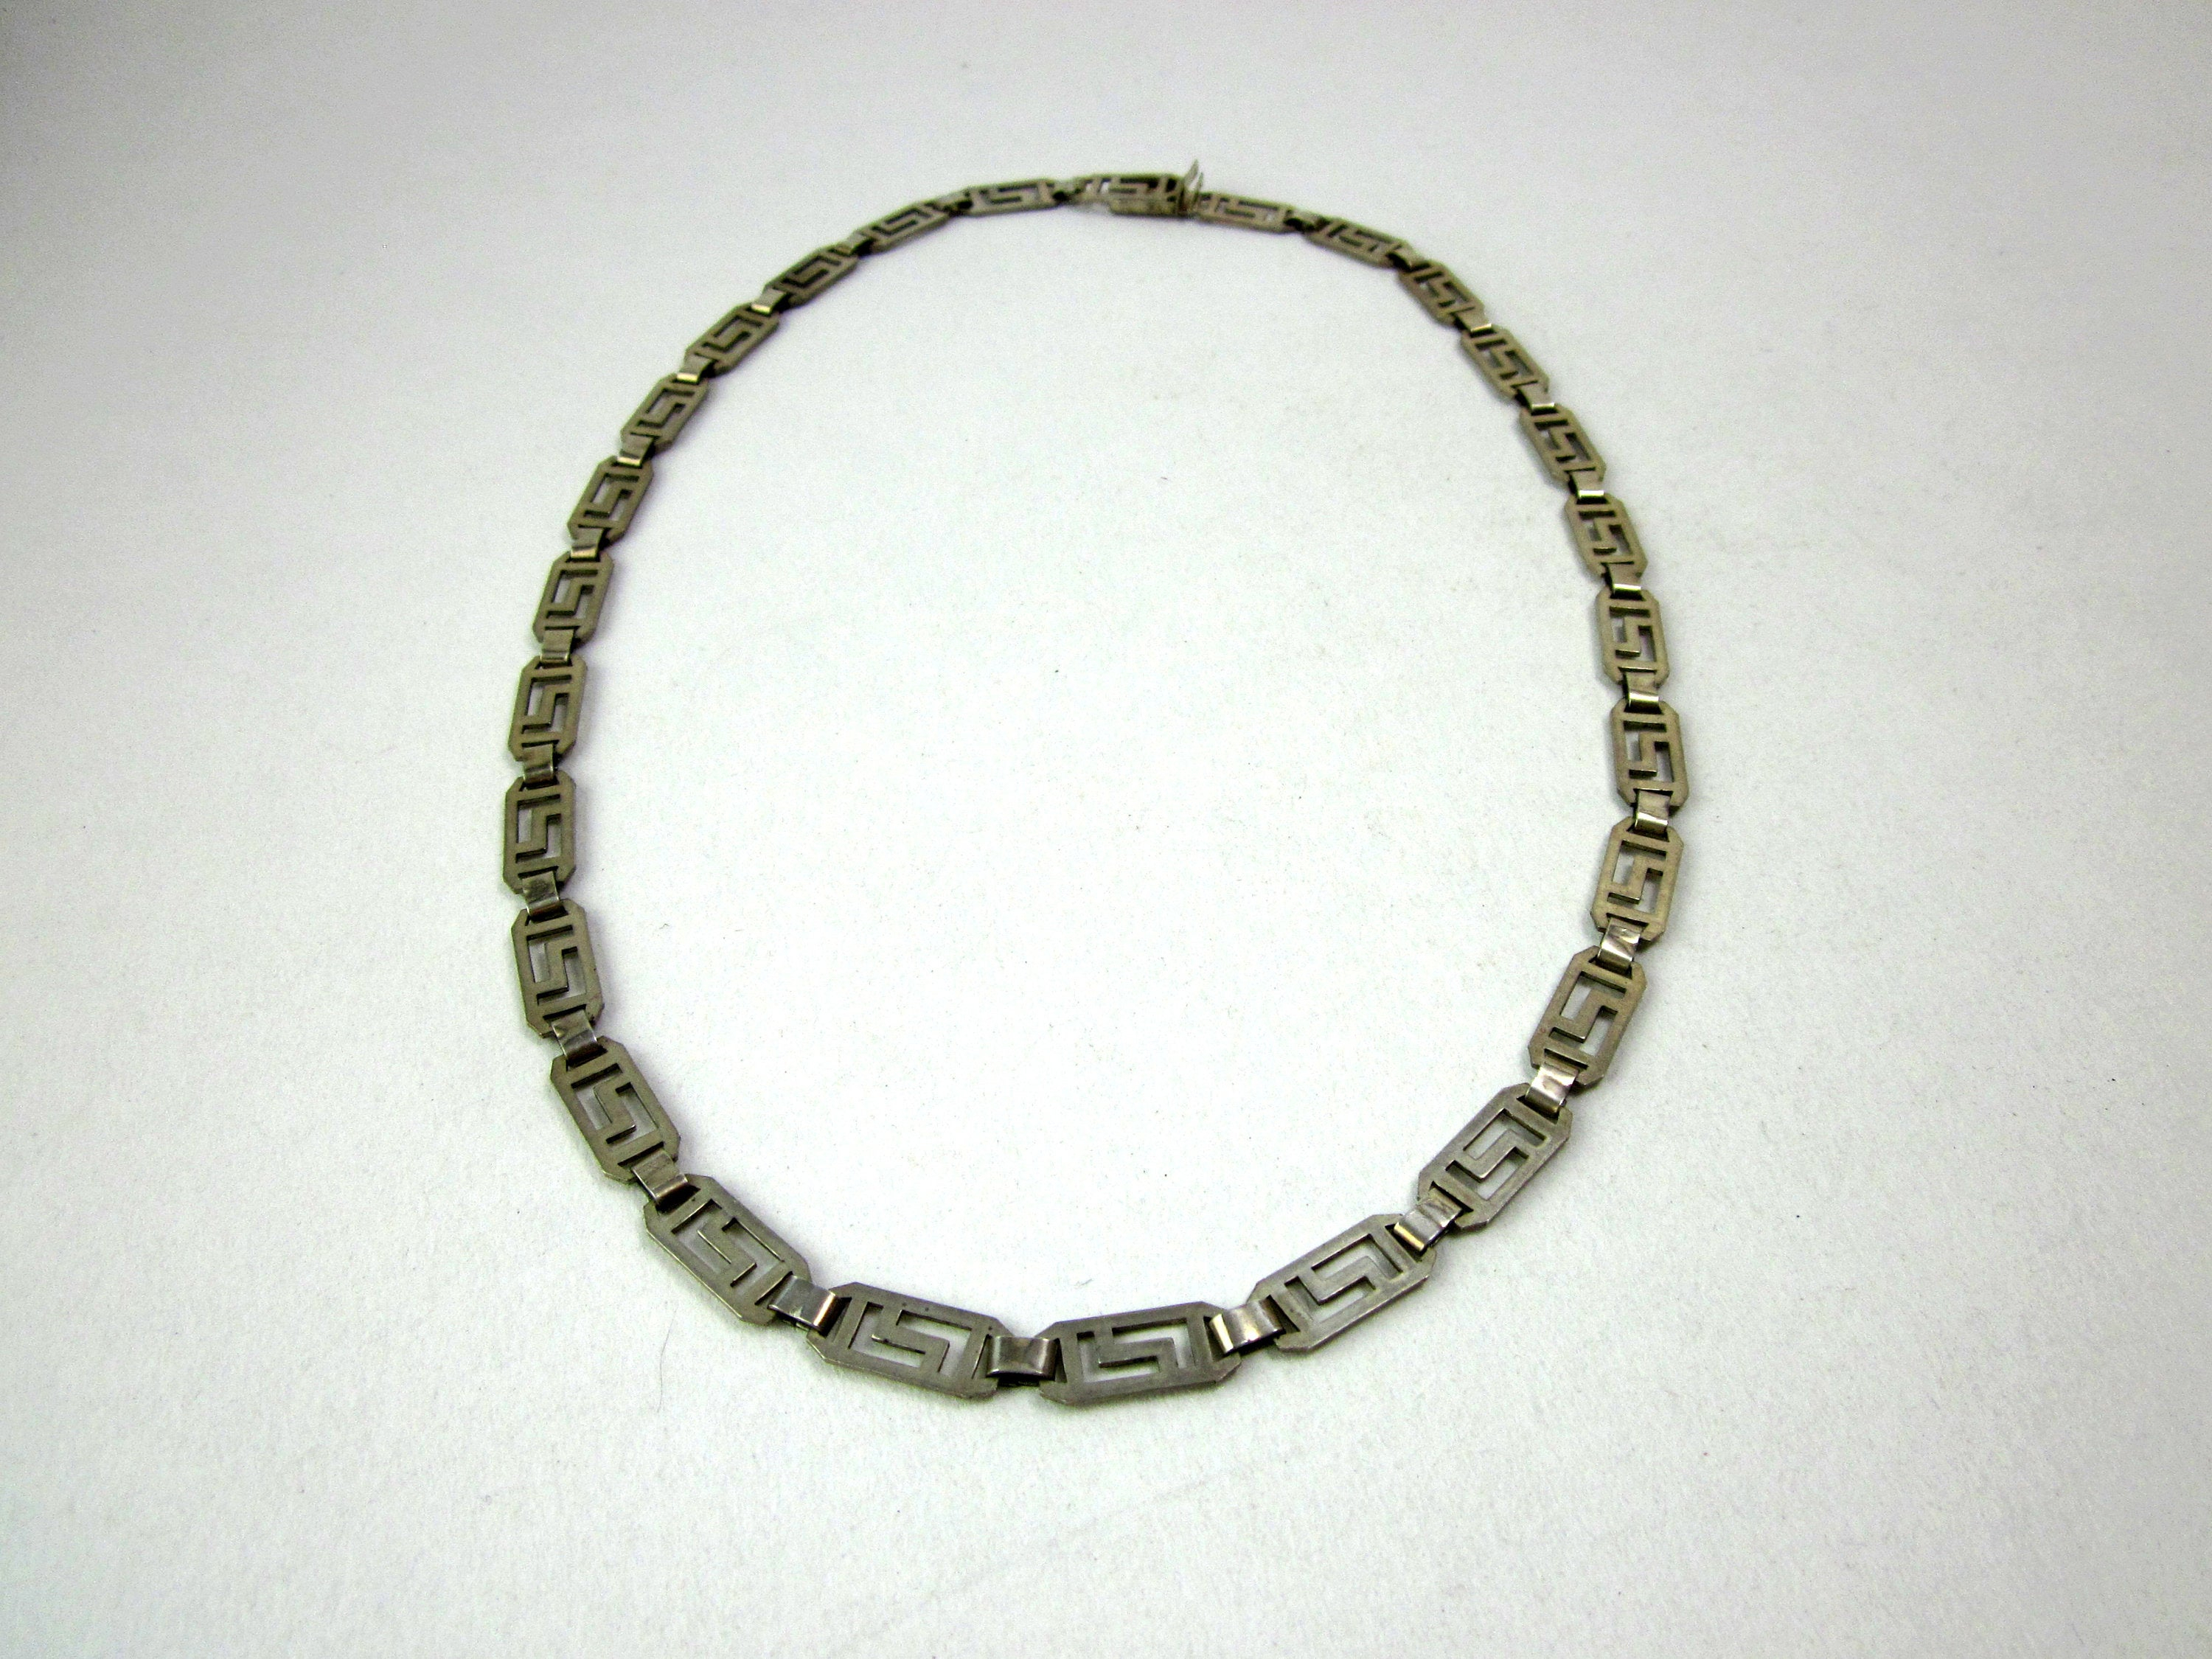 925 Silver Cline Chain, Collier, Necklace, Vintage Jewelry Necklace, Gift With Regard To Most Current Vintage Circle Collier Necklaces (View 4 of 25)